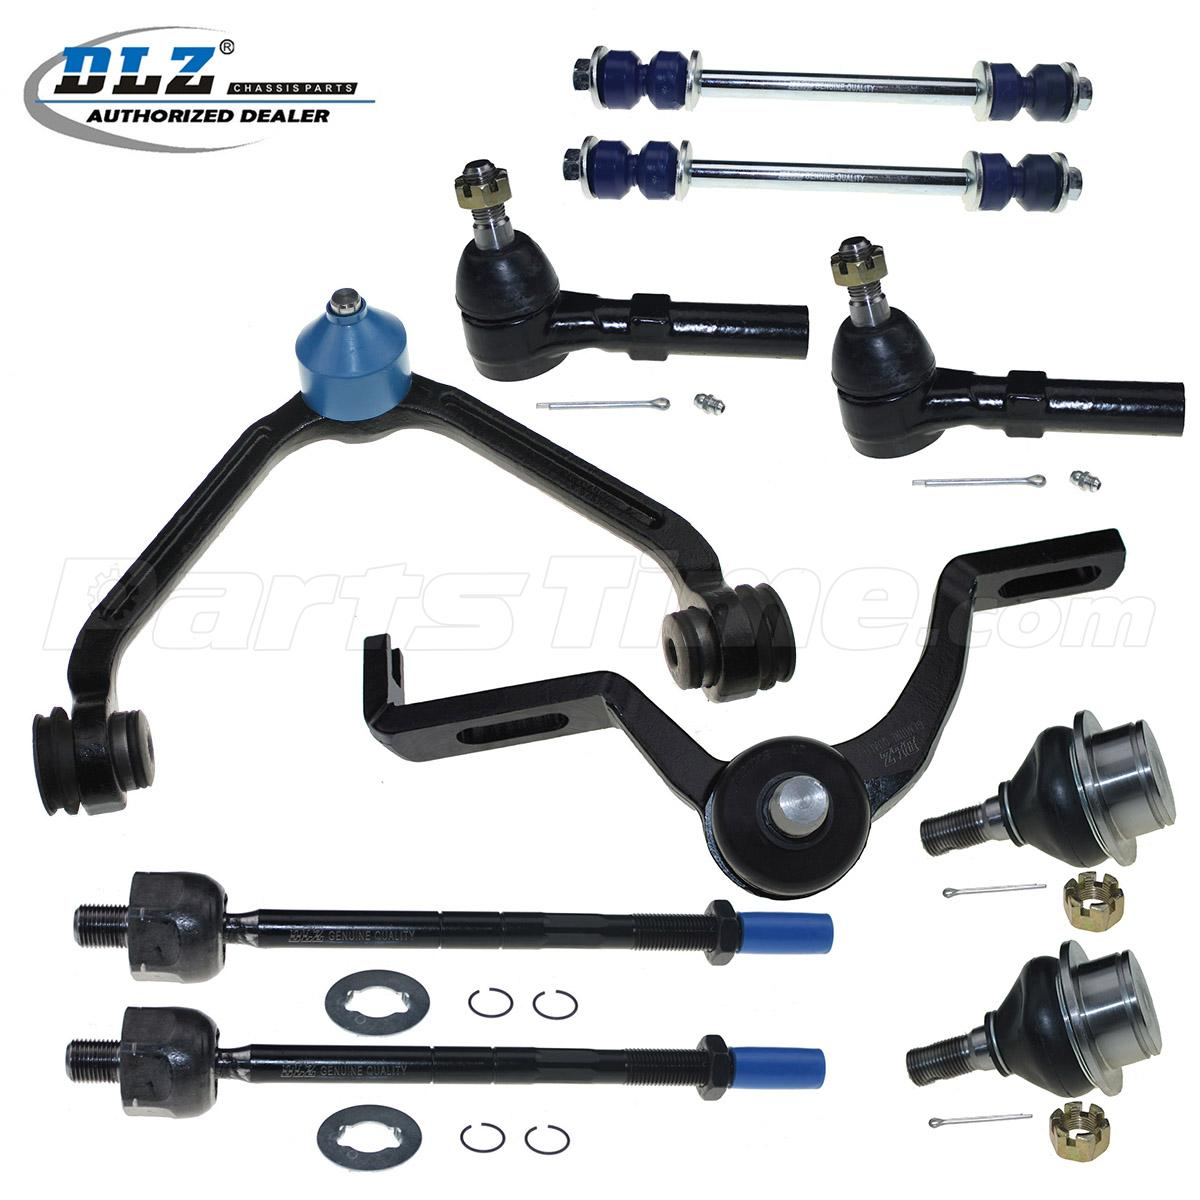 2004 Mercury Mountaineer Suspension: New Suspension Front Control Arm Tie Rod End Kit Set For